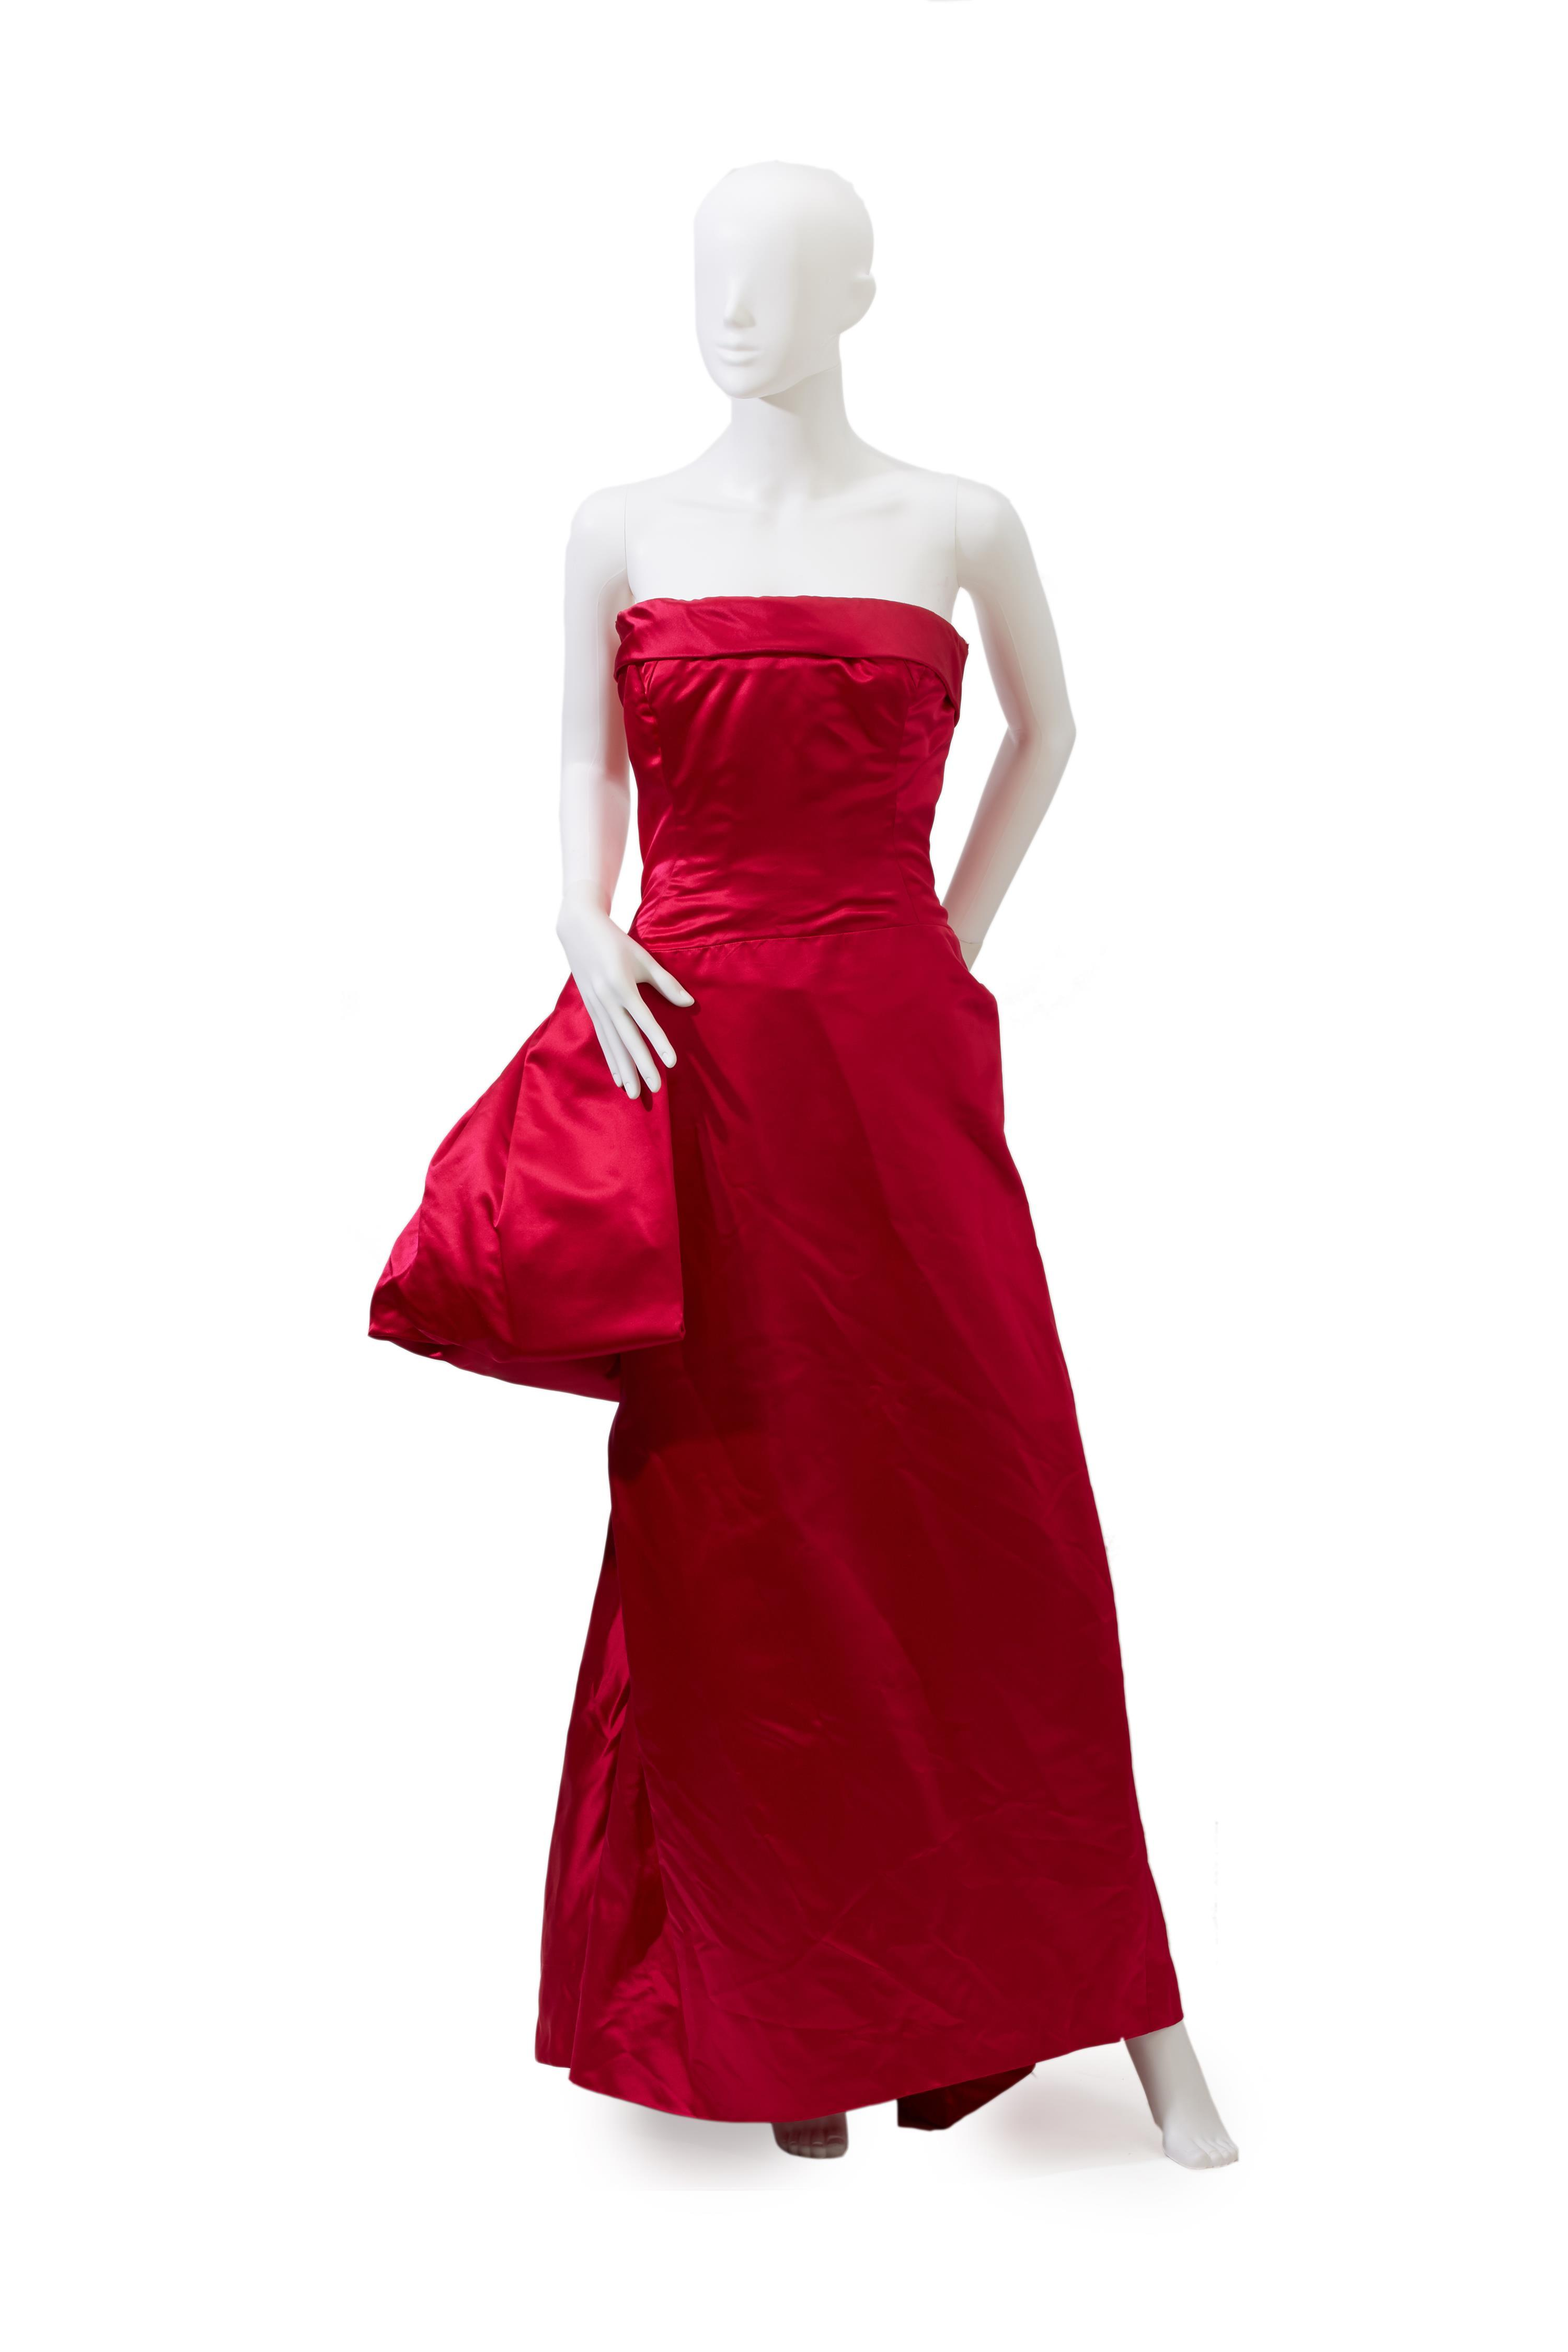 A Christian Dior New York strapless evening gown